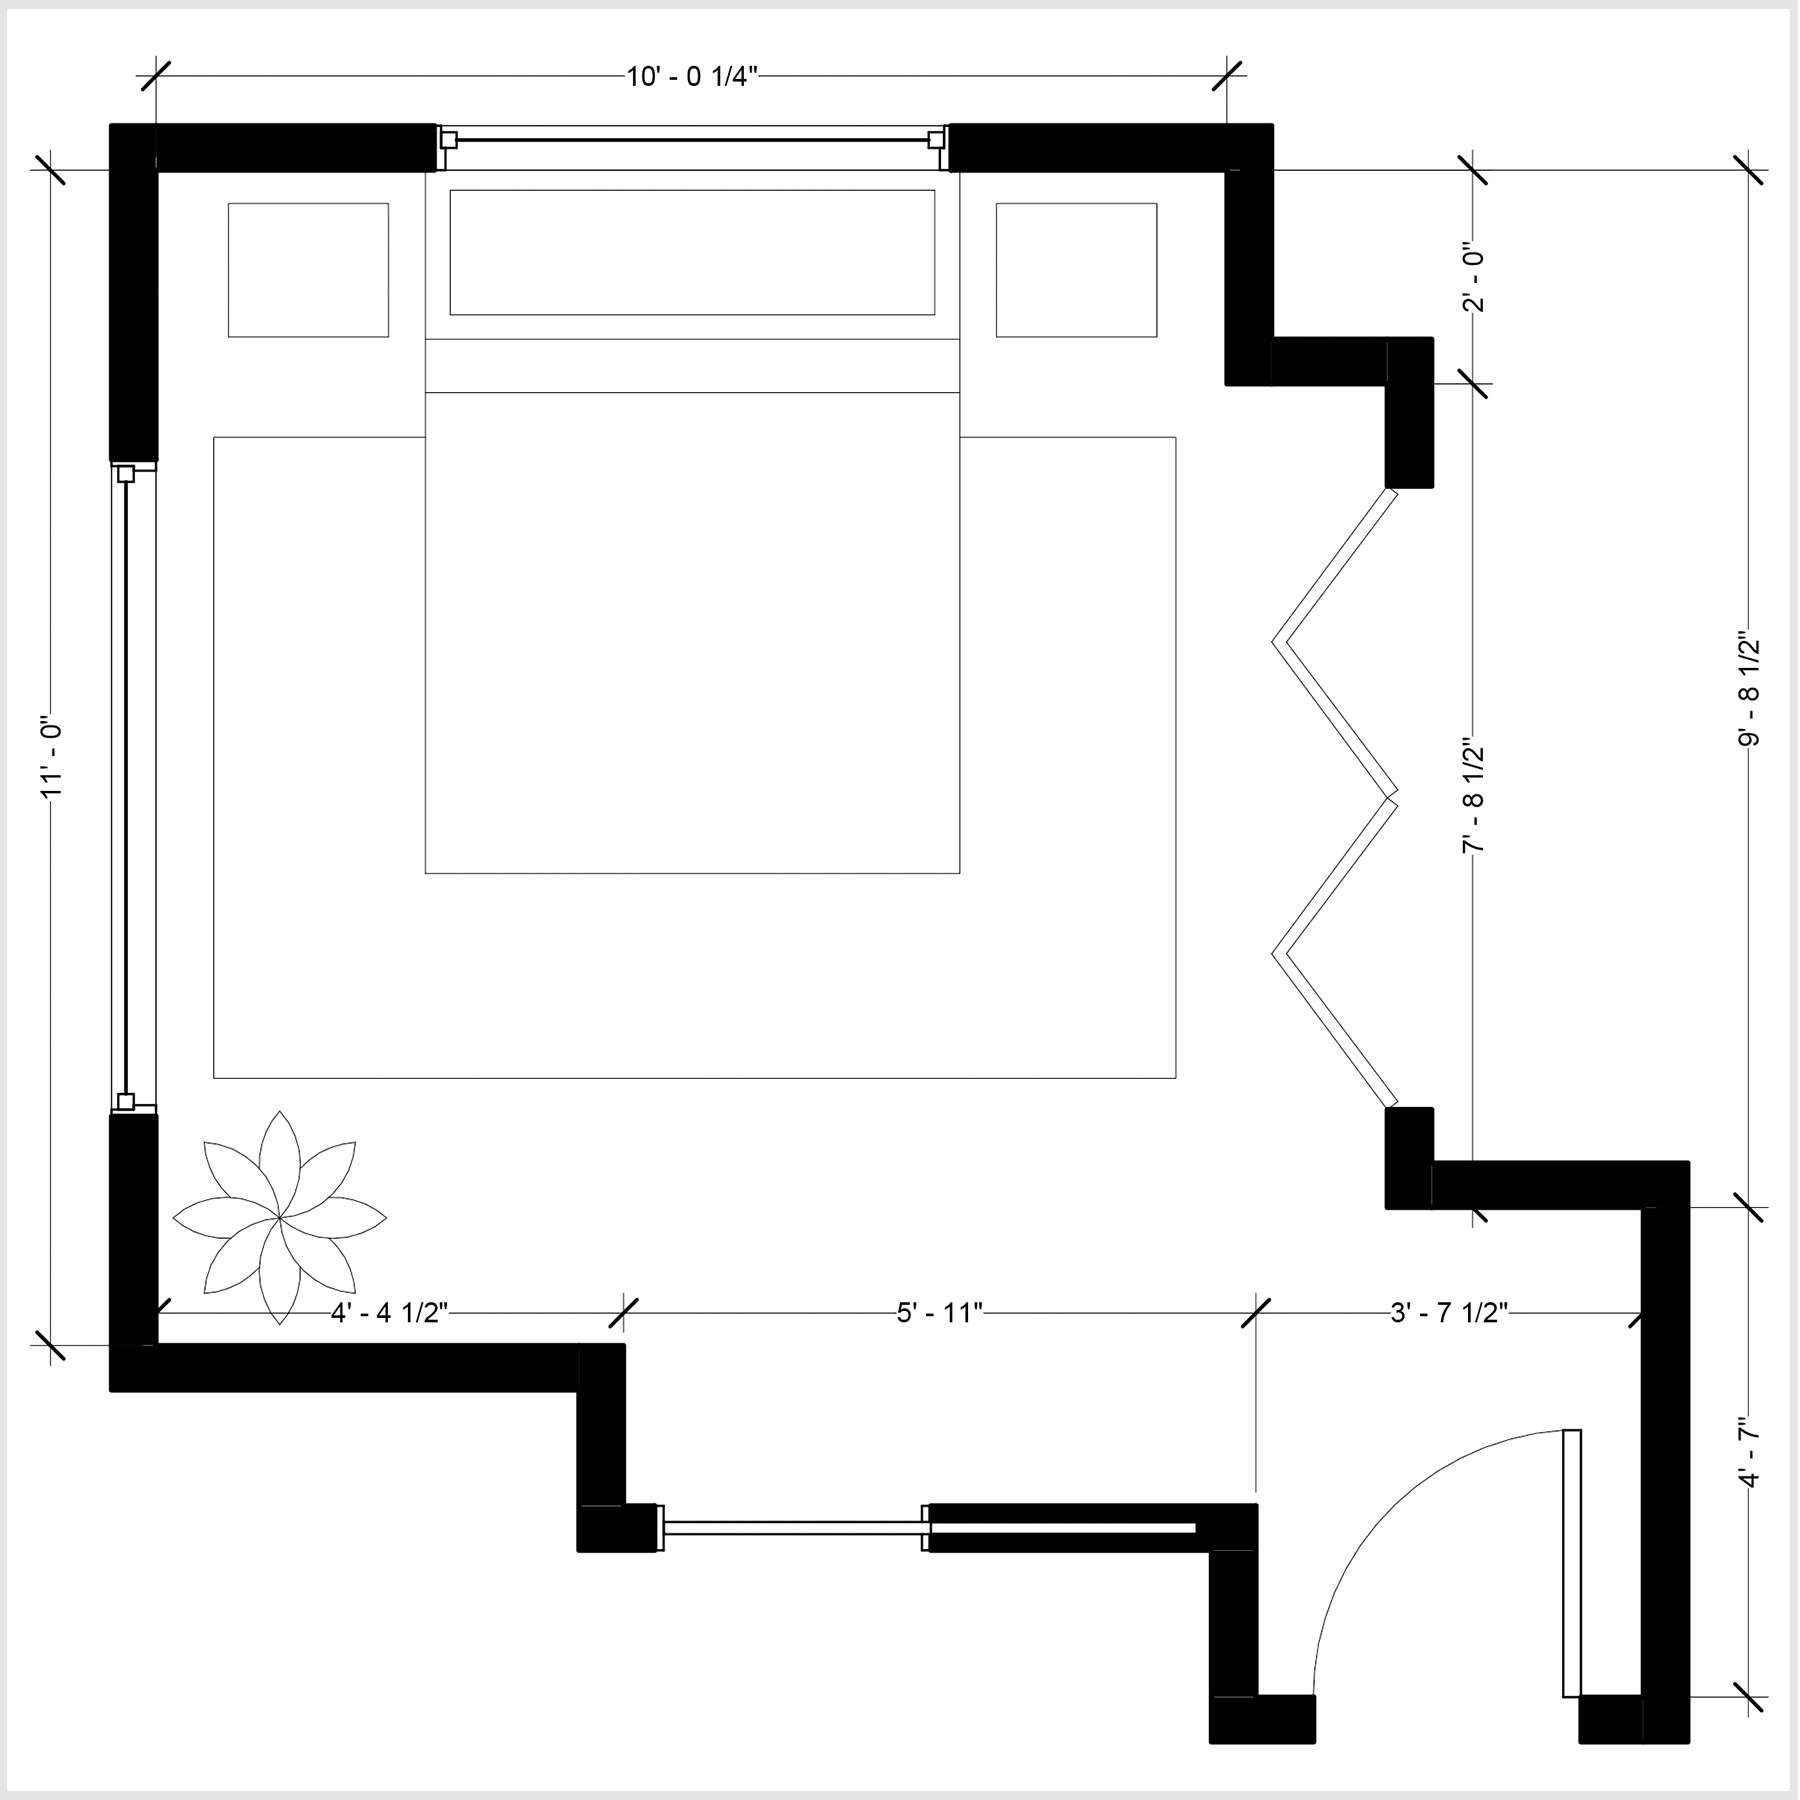 2: Furnishing Design in a Day - Floor Plan with suggested layout